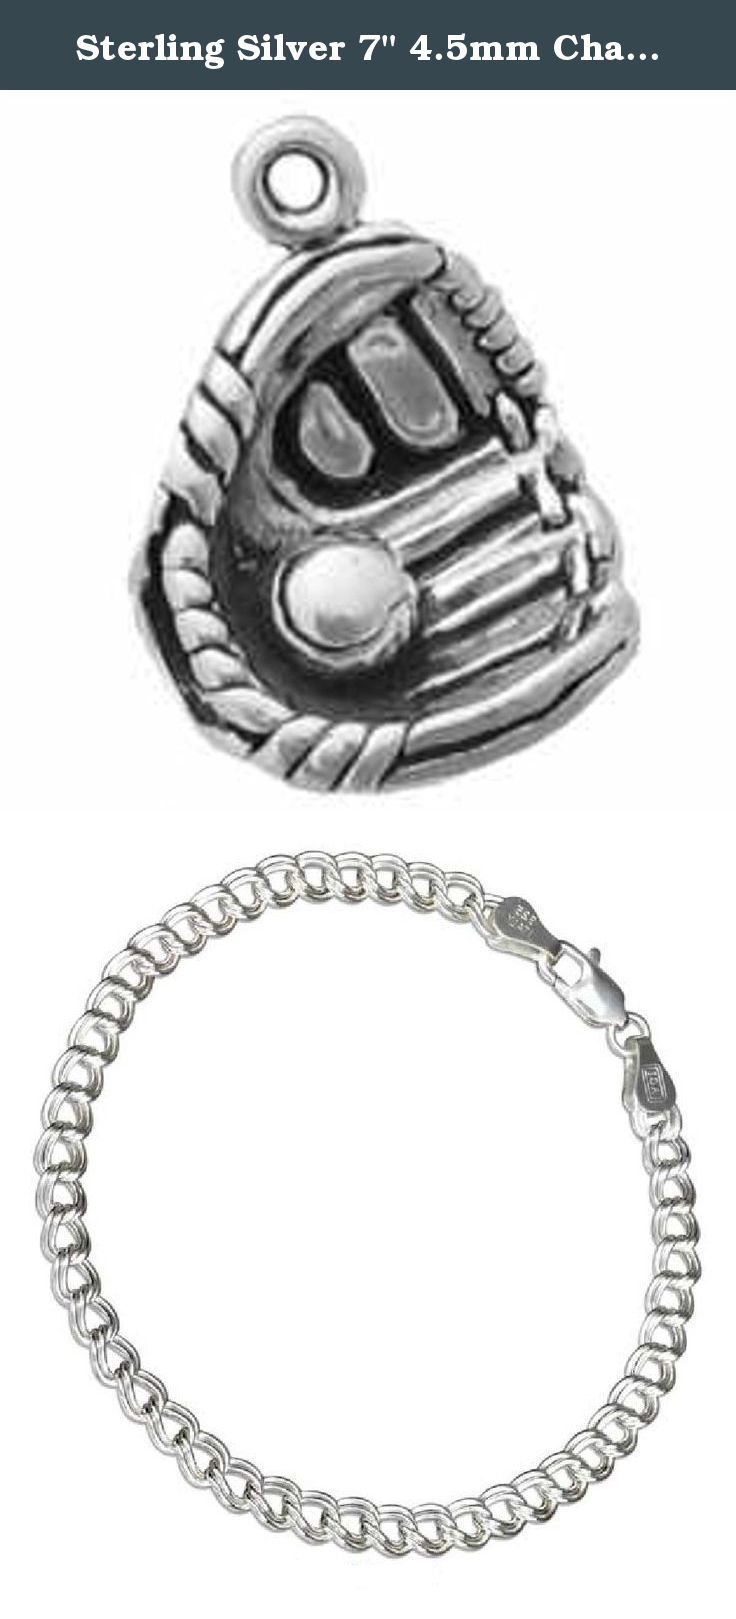 "Sterling Silver 7"" 4.5mm Charm Bracelet With Attached 3D Baseball Glove With Baseball Sports Charm. Sterling Silver 7"" 4.5mm Italian Made Charm Bracelet With Attached 3D Baseball Glove With Baseball Charm. Great Charm For Any Baseball Or Softball Player. Material: .925 Sterling Silver Dimensions: Fully 3D Charm Height: 5/8"" Length: 4/8"" Width (Thickness): 2/8"" Units Sold By: Single SKU#: A37100T-BR452 Charm Made In: United States All Measurements Are Approximate ."